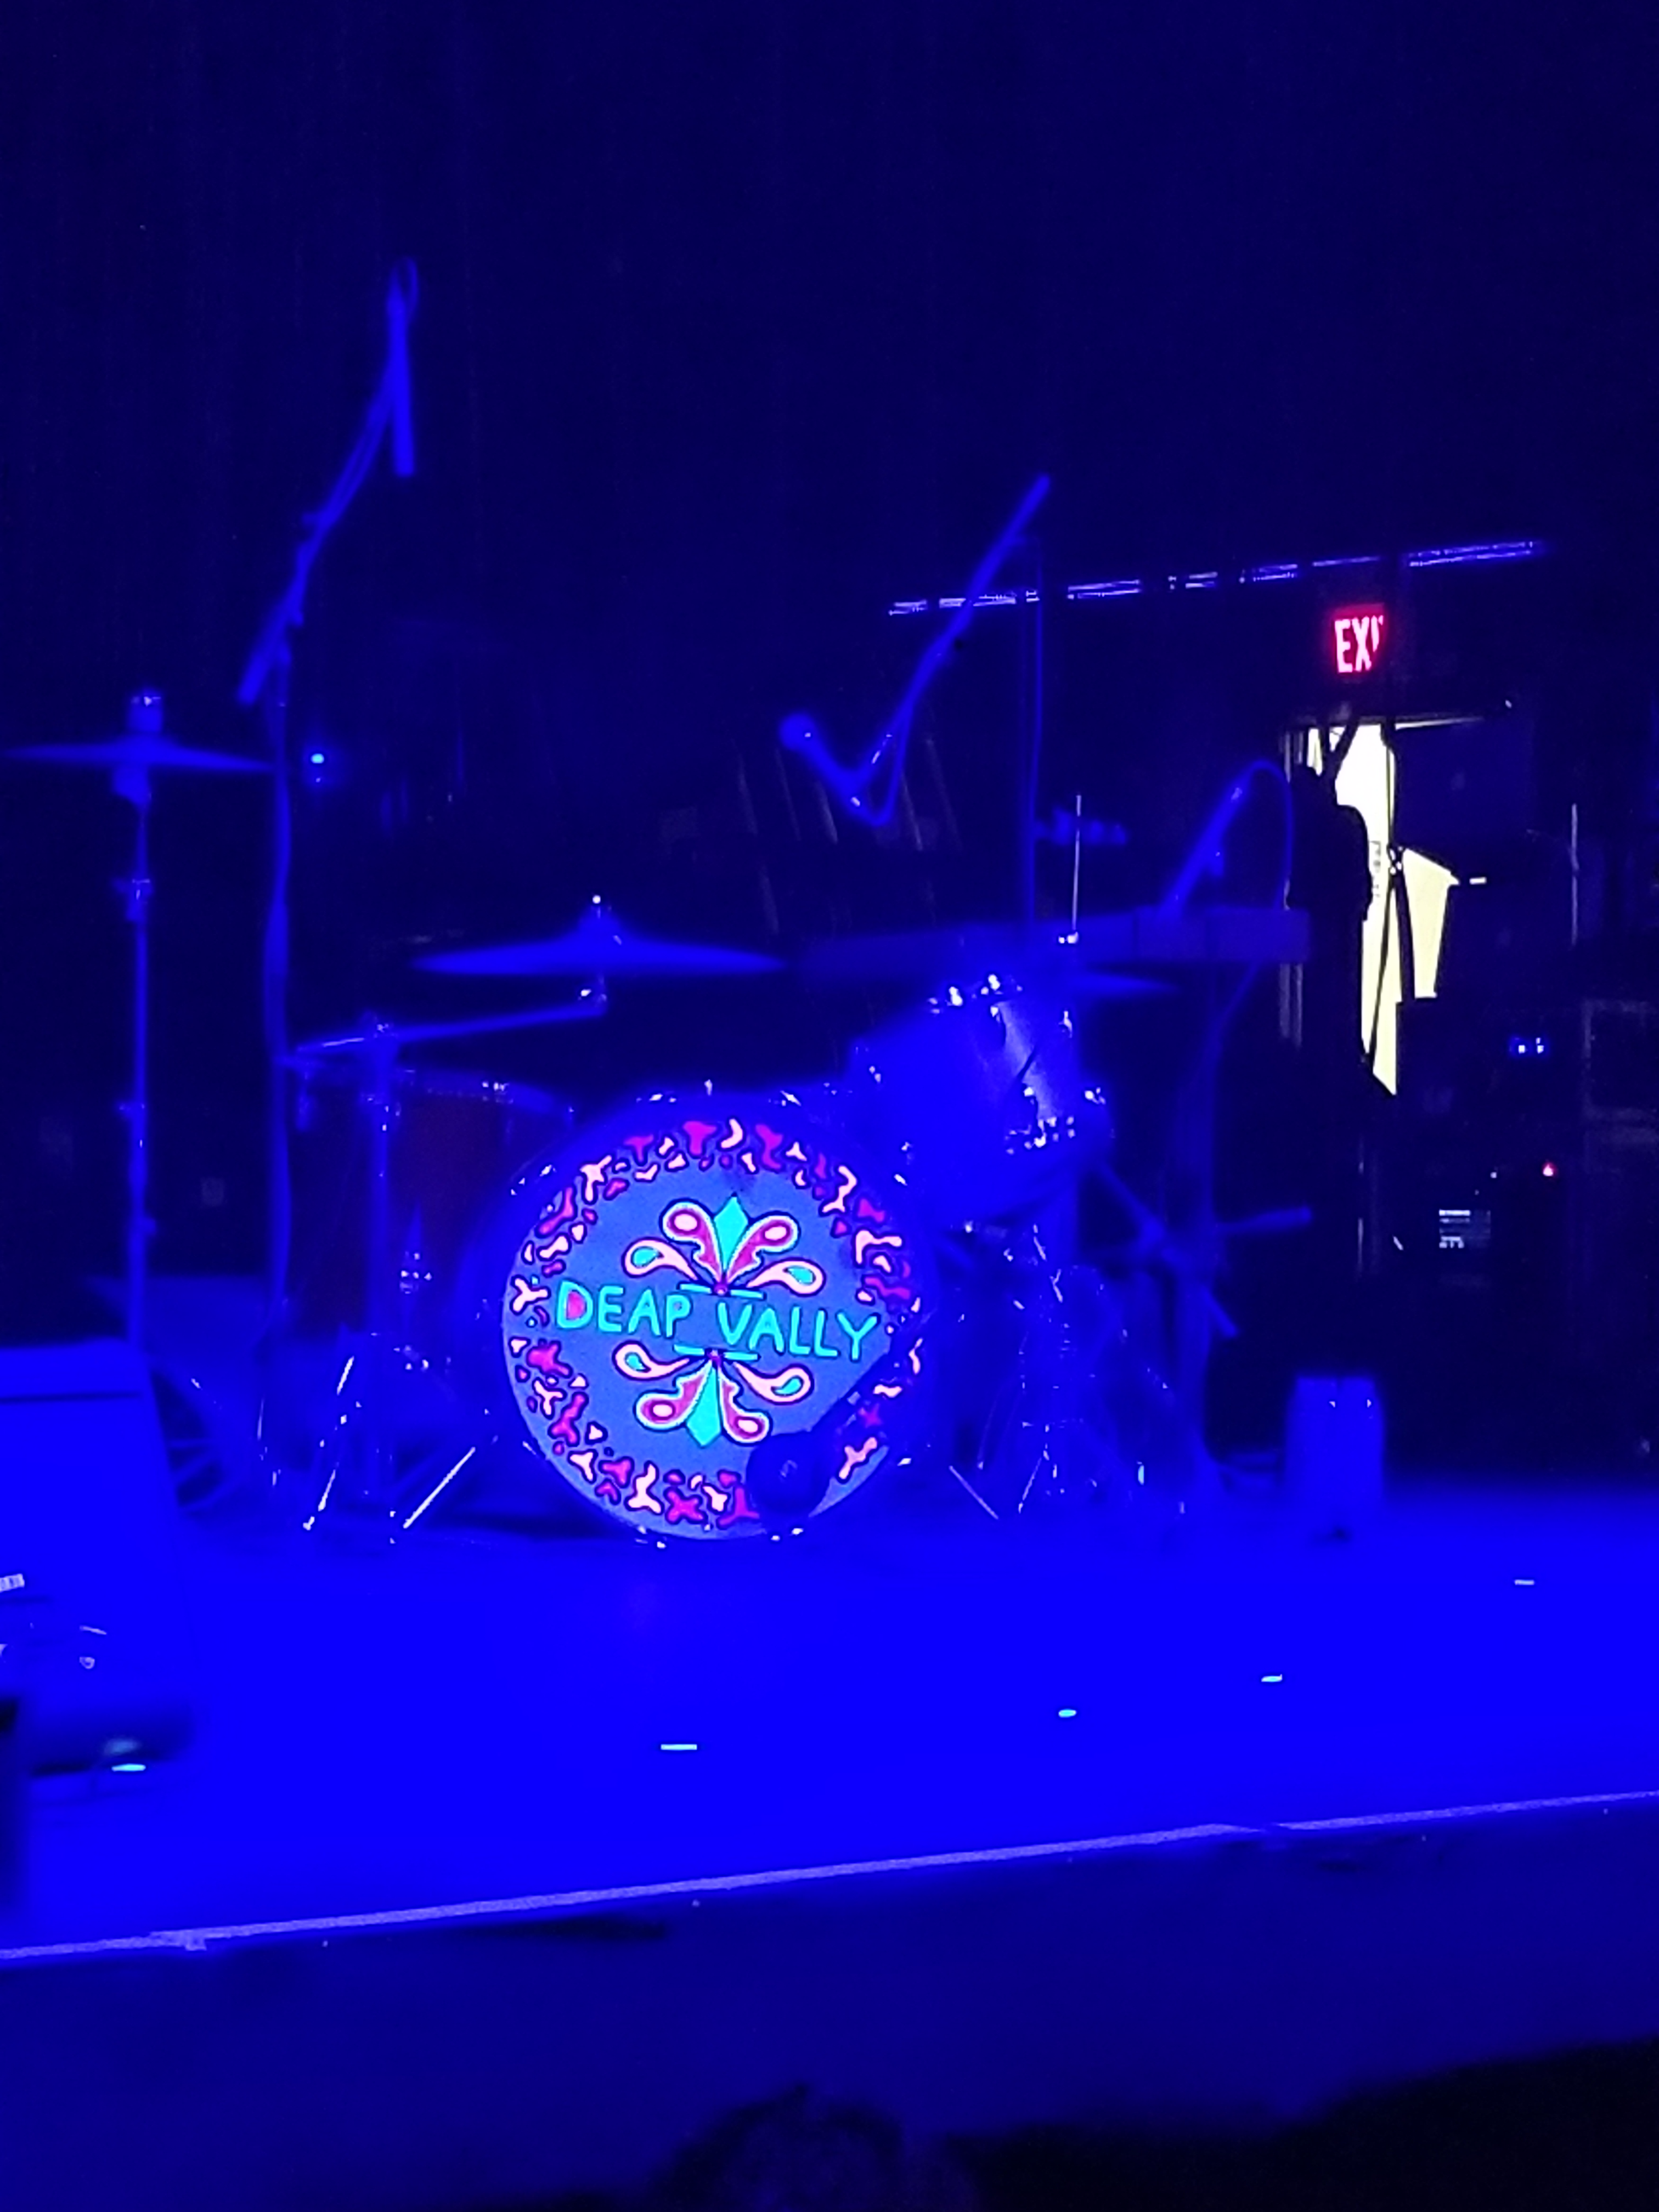 Arte Concert King Krule Deap Vally Count Basie Theater Red Bank Nj July 28 2017 I